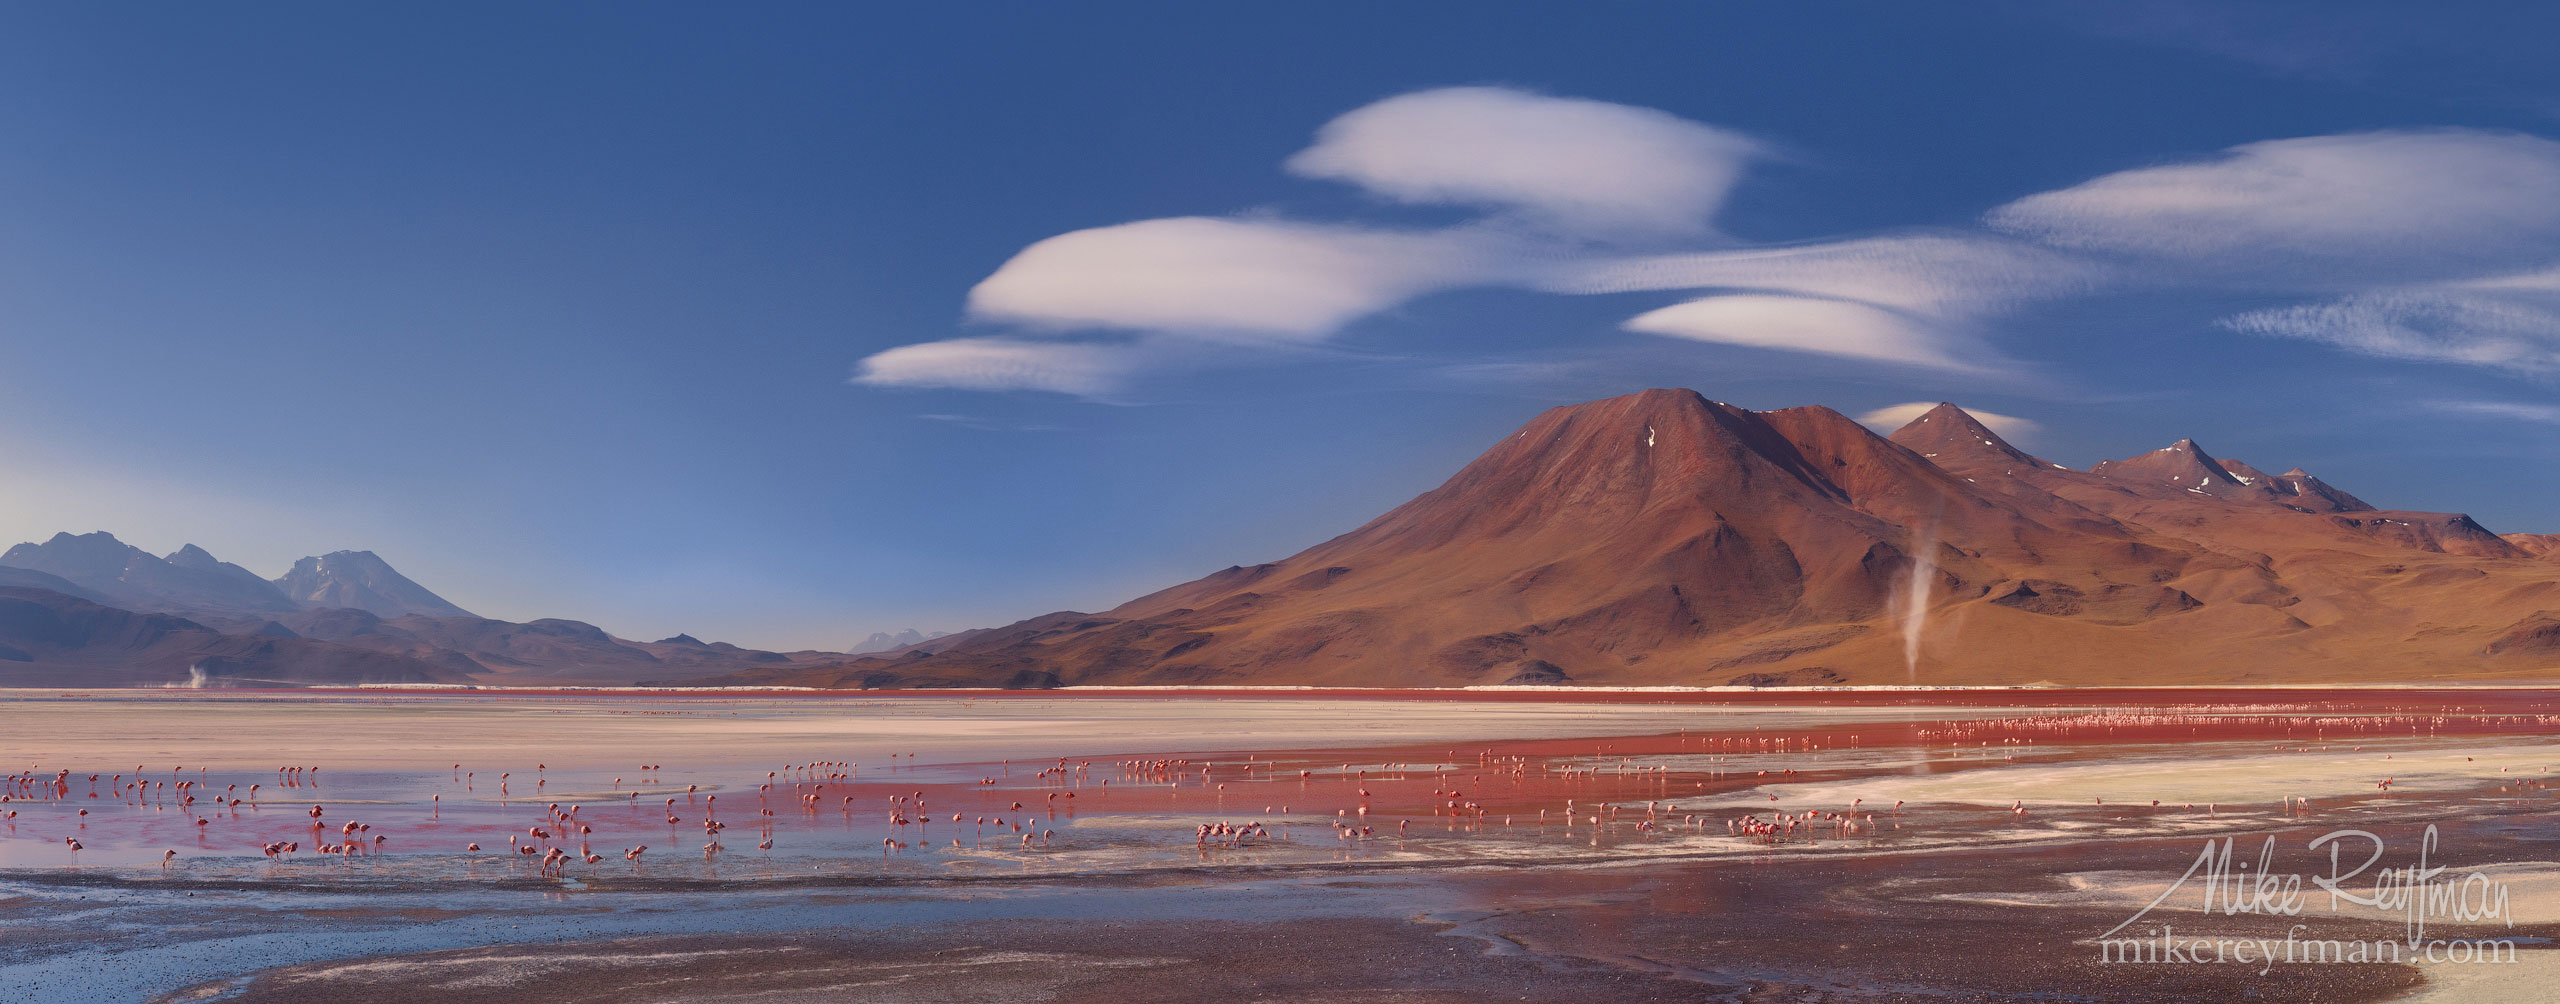 AA1-Q3X0989_Pano_1x2.55 - Atacama and Altiplano. The Driest Desert and The High Plain - Mike Reyfman Photography